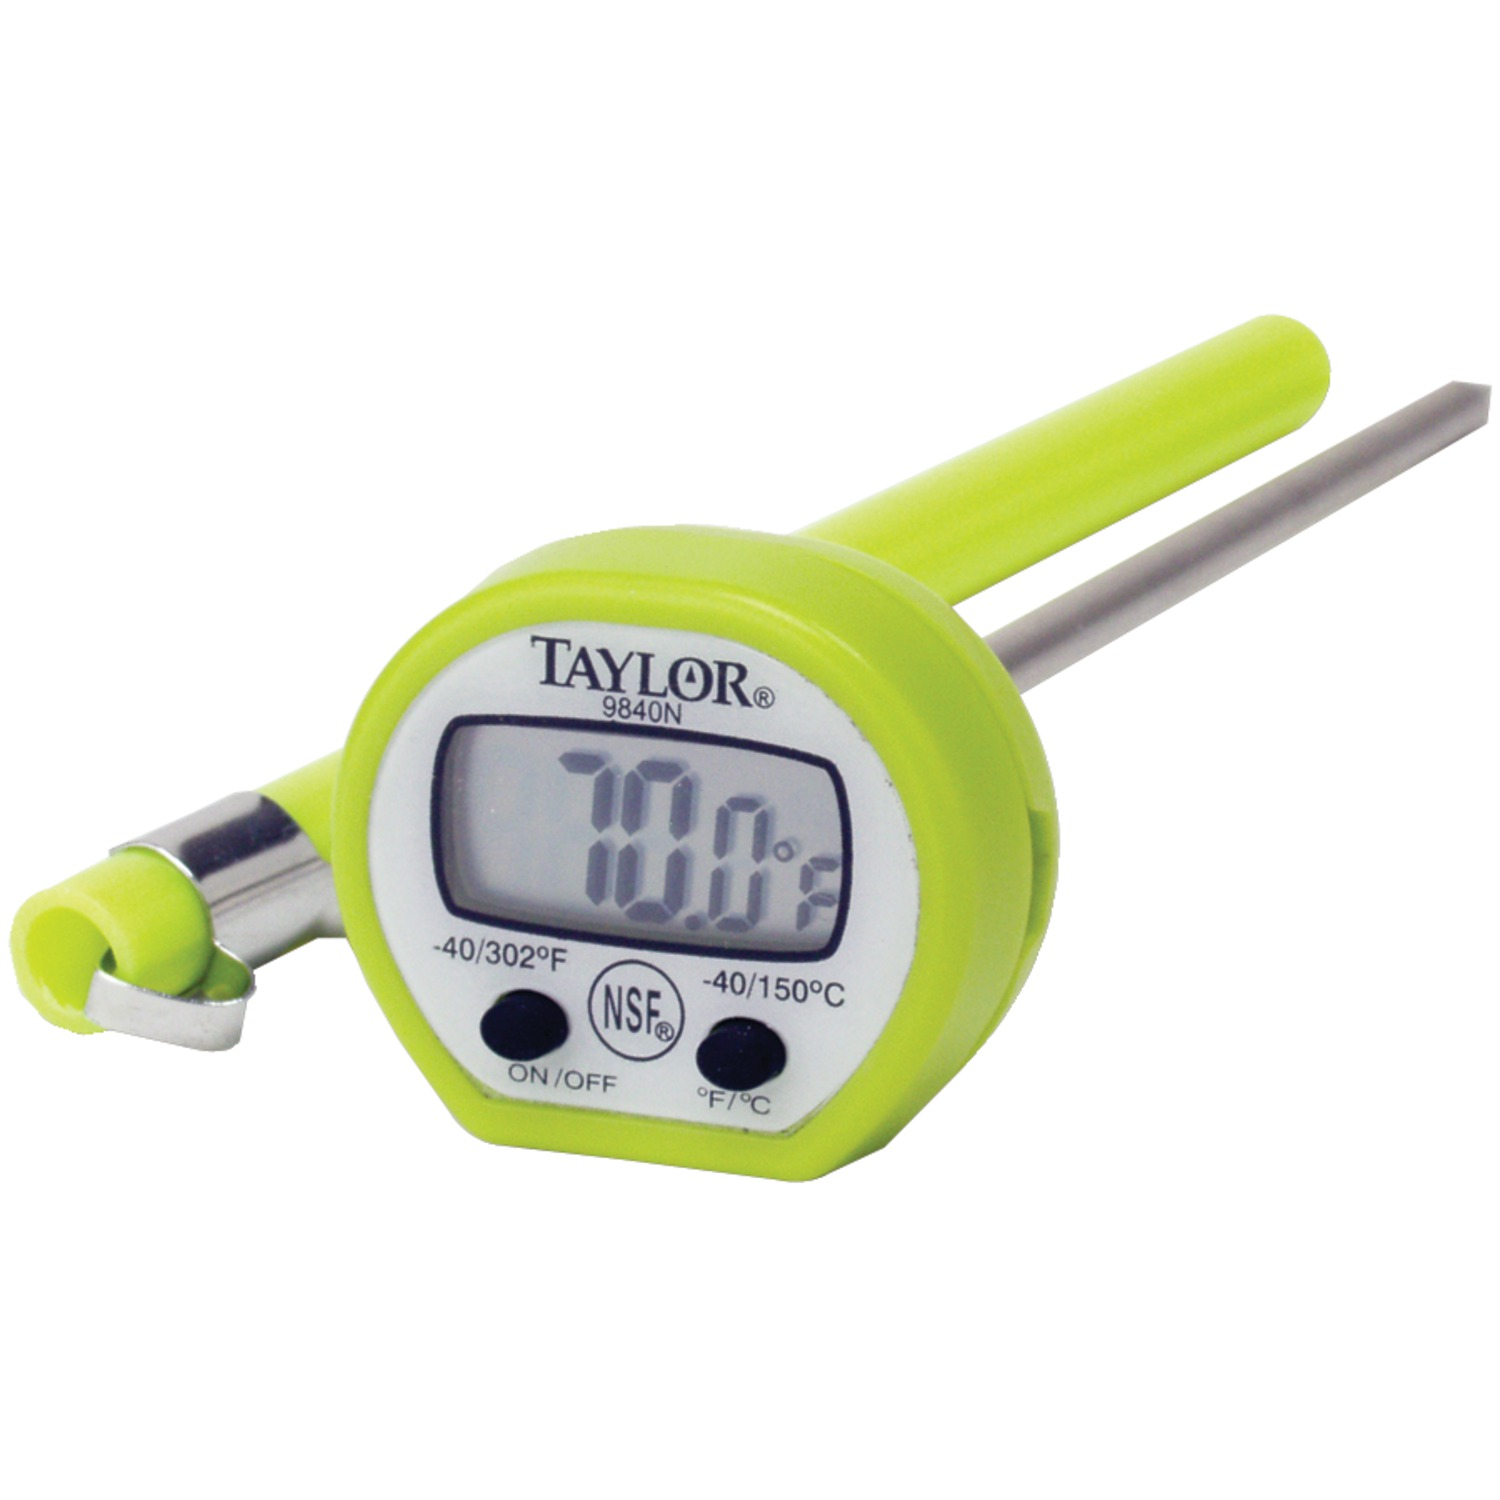 Taylor Classic Instant Read Pocket Thermometer Set Of 6 Walmart Com Walmart Com